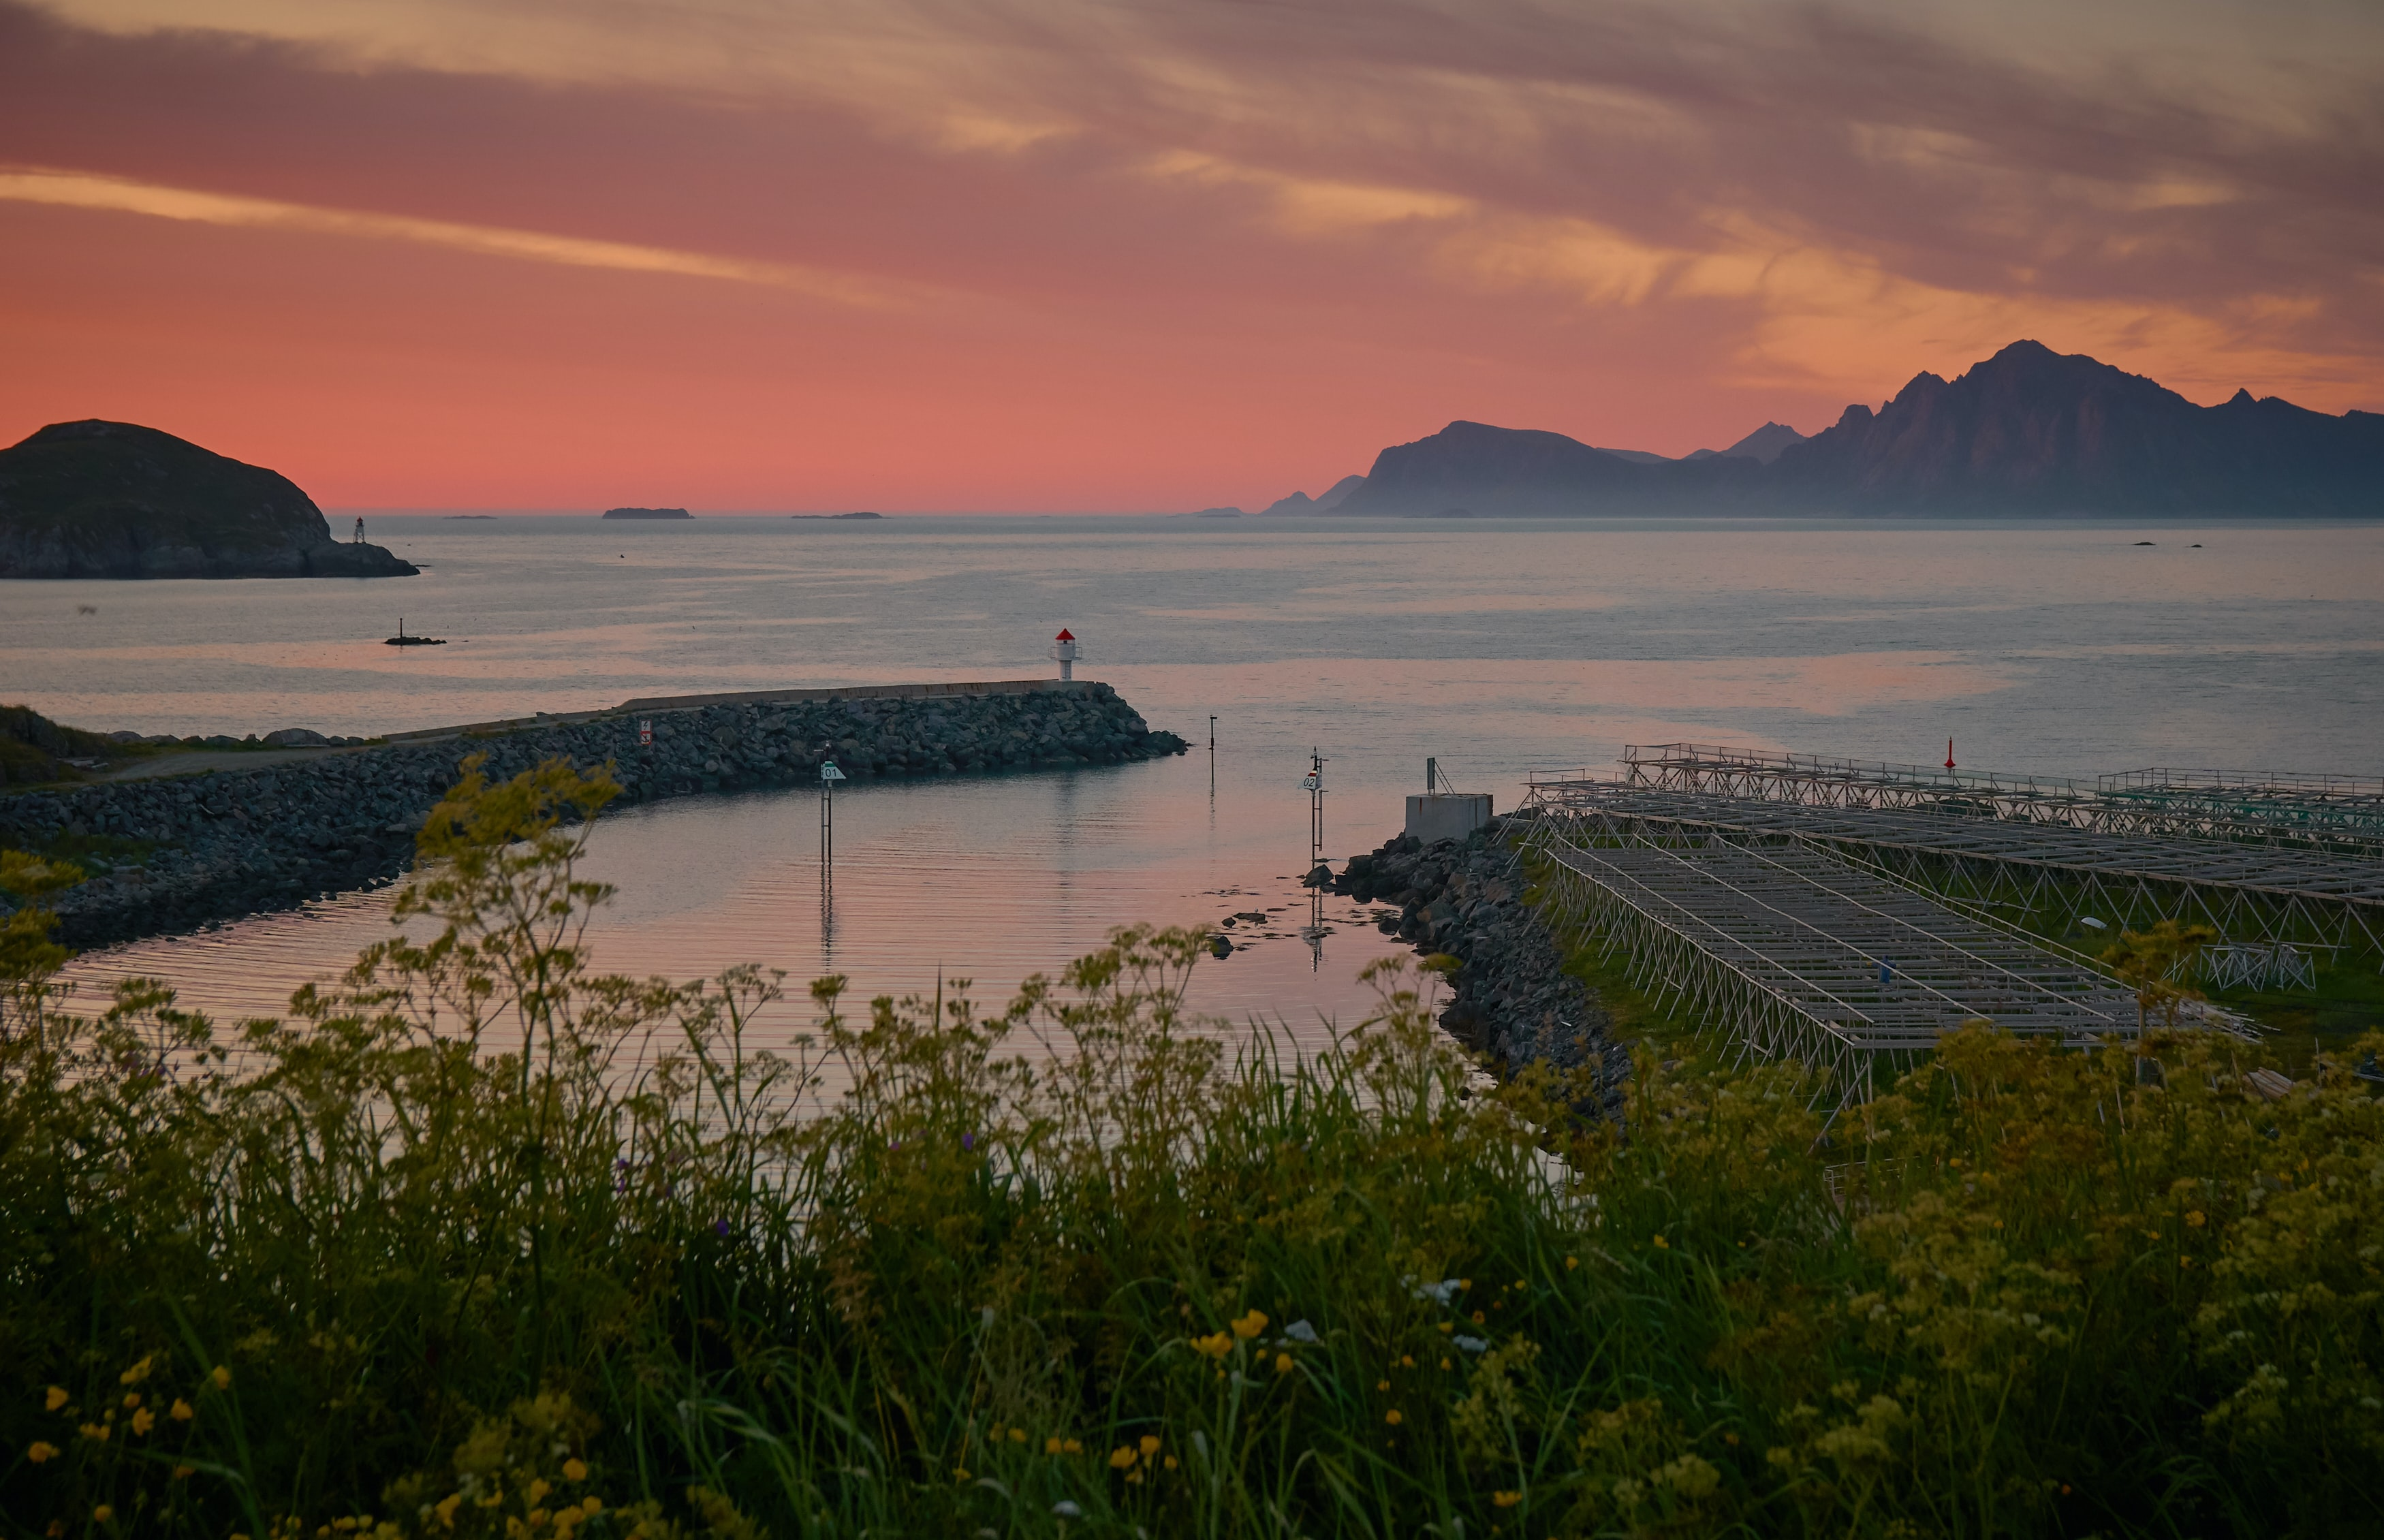 calm sea beside mountain and docks during golden hour